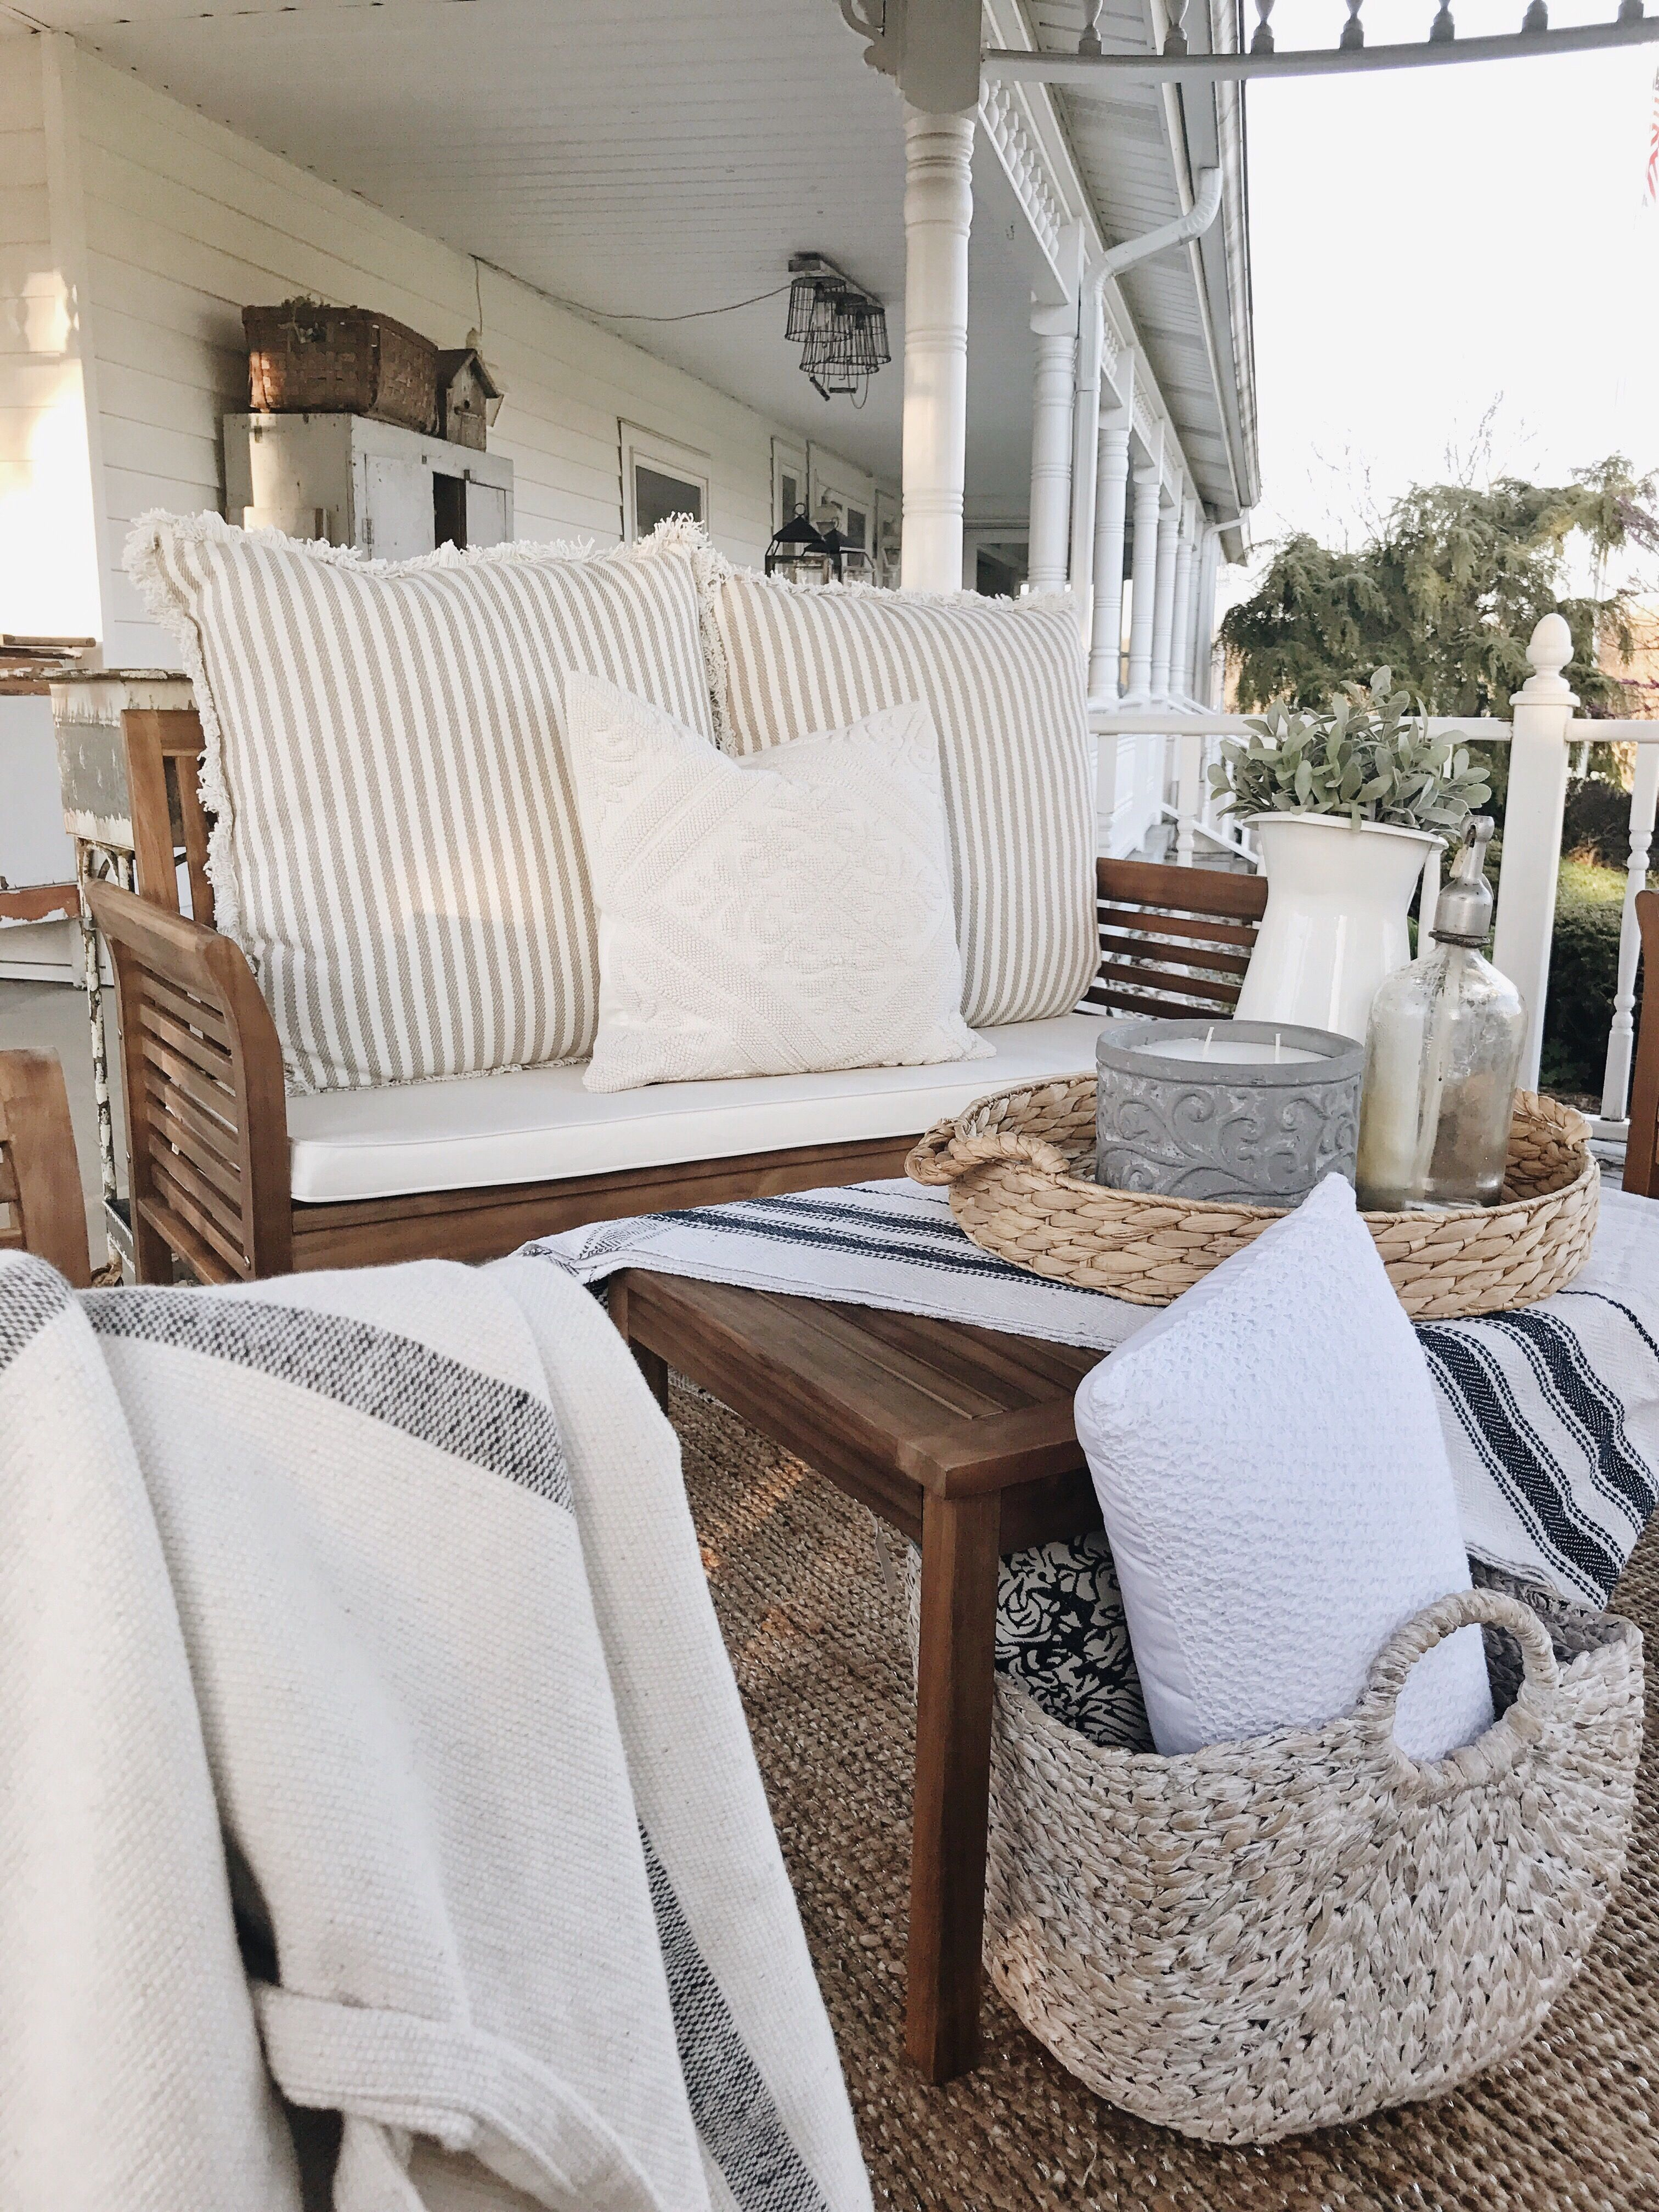 How To Make Any Fabric Outdoor Safe